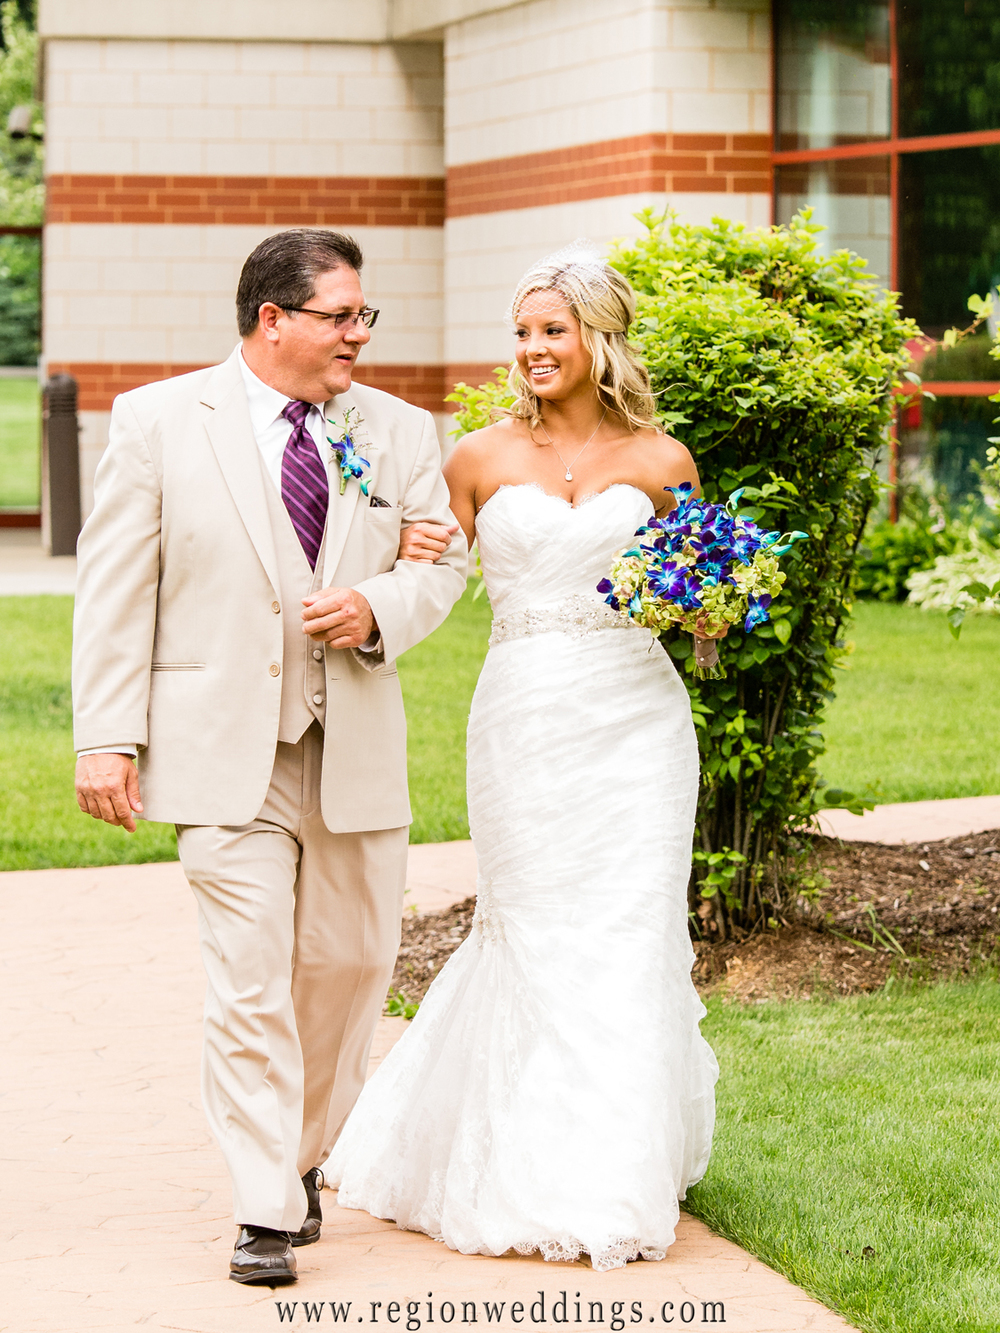 Bride walks down the aisle with her Dad at an outdoor wedding ceremony at the Halls of St. George.